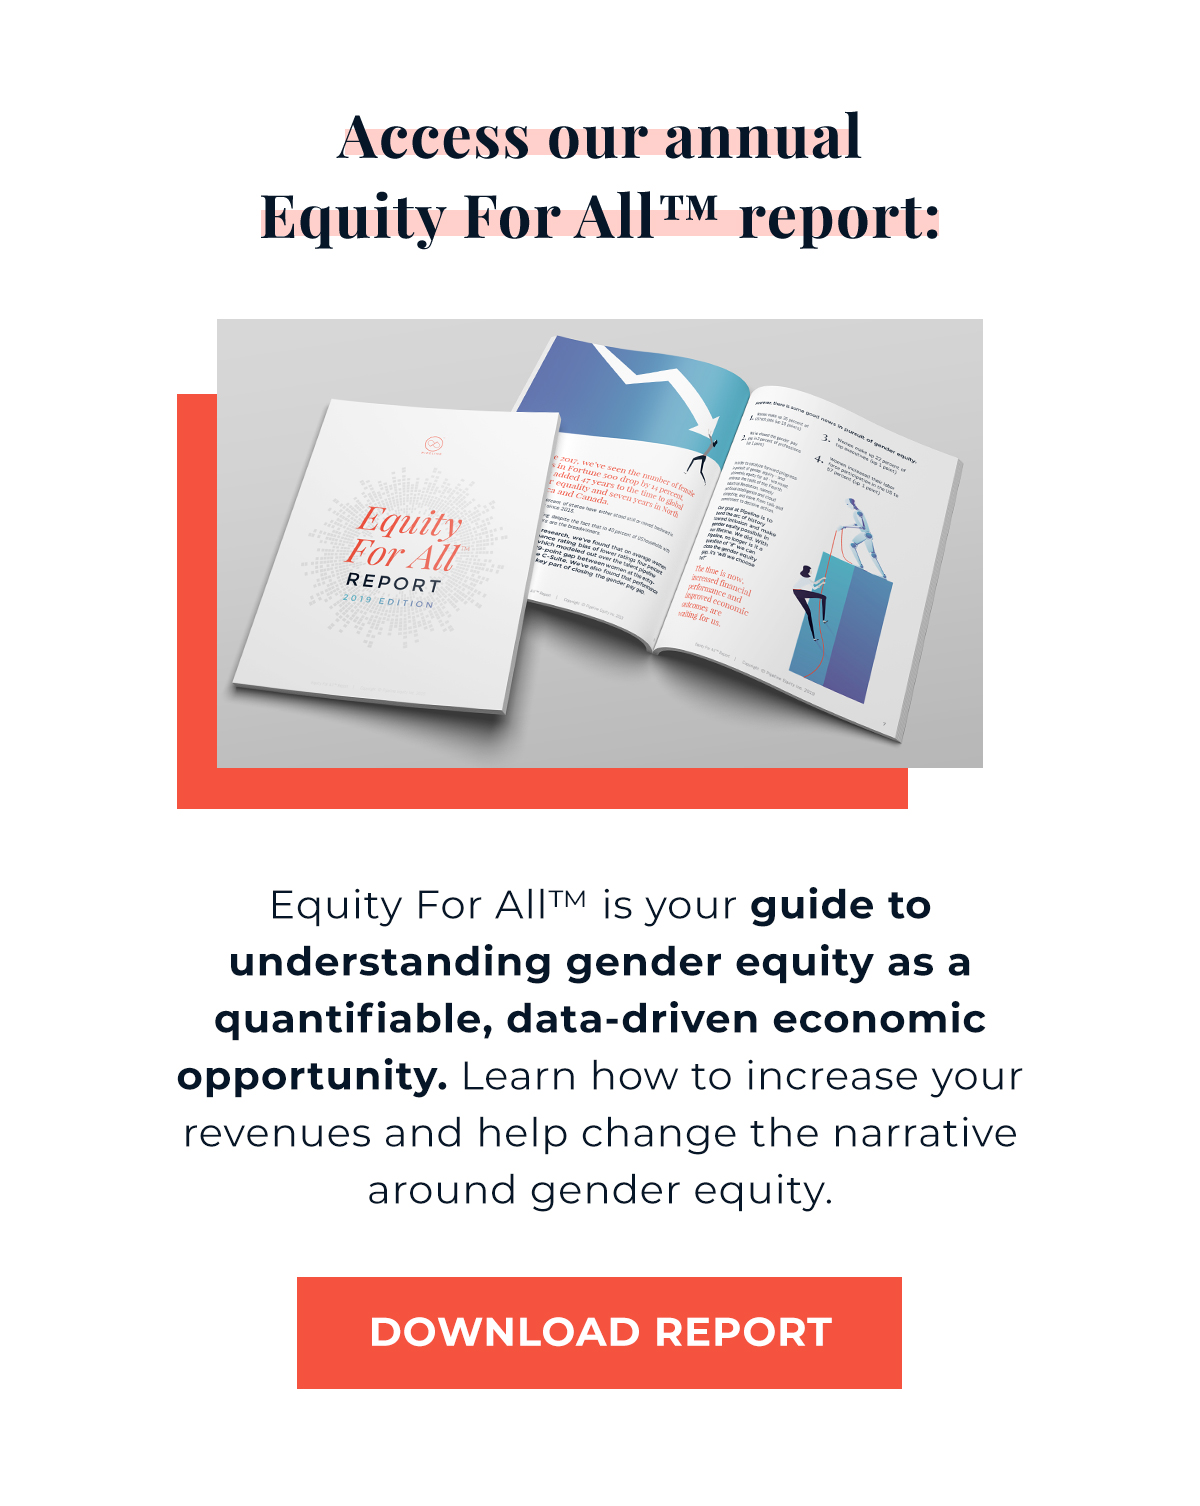 Access Our Annual Equity for All Report